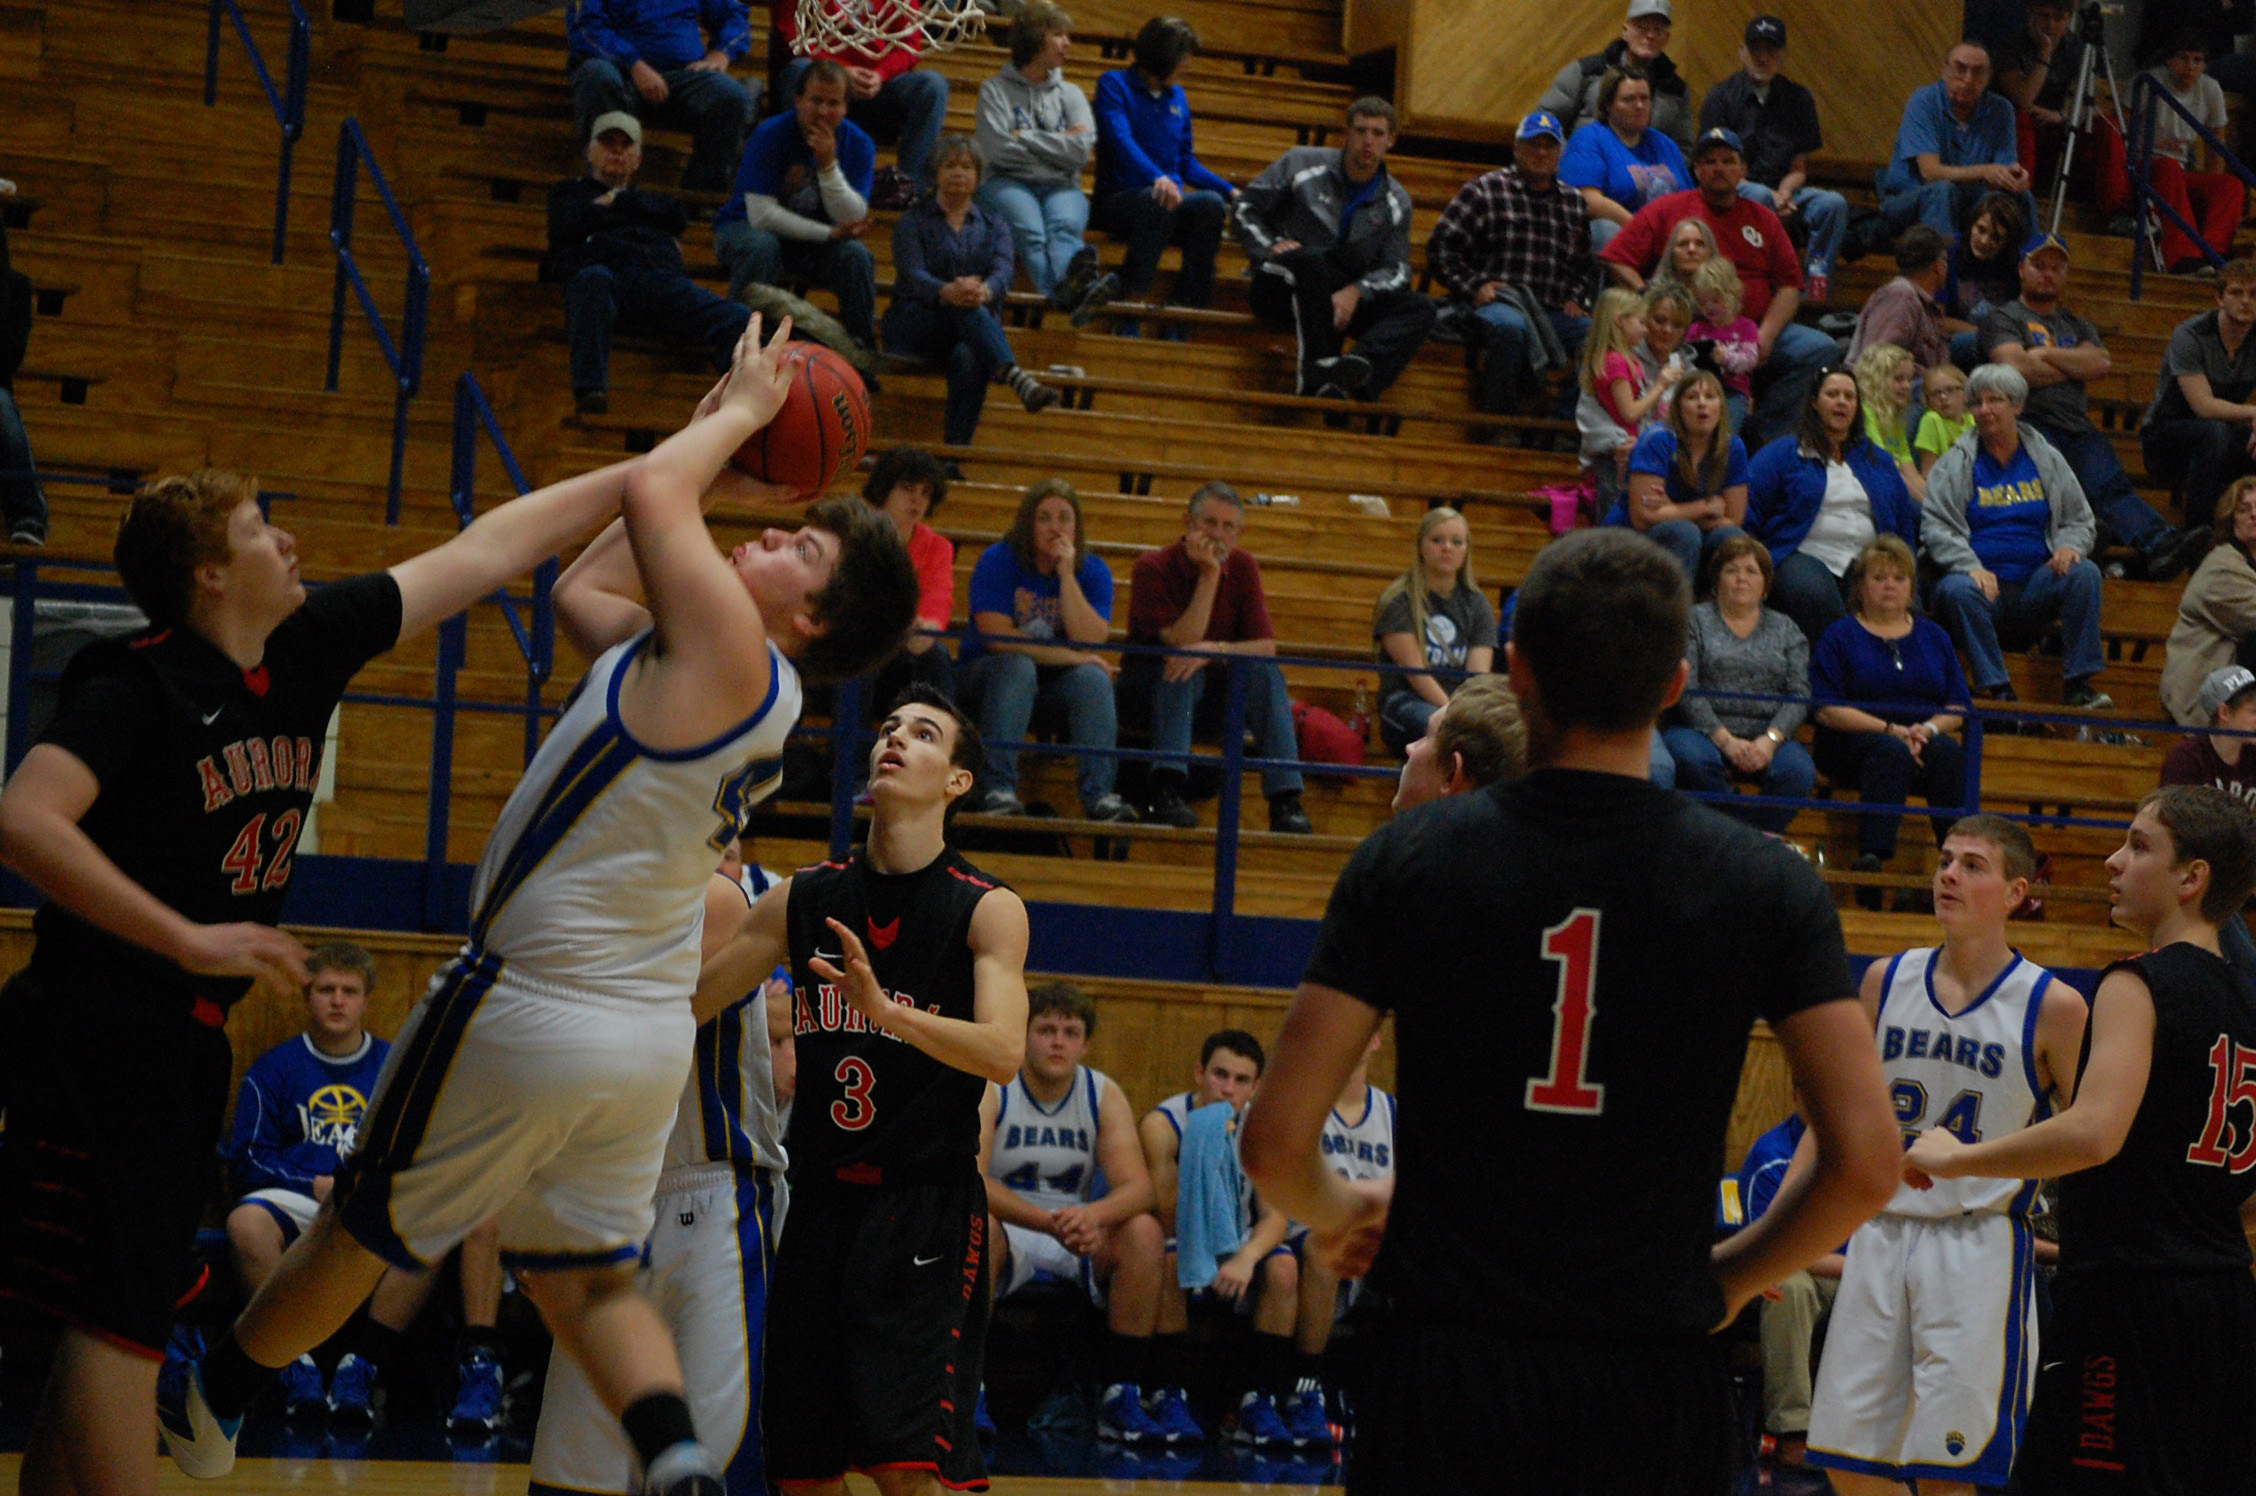 Ava's Zach Hunsaker struggles to control the ball on a rebound in varsity action Saturday with Aurora.